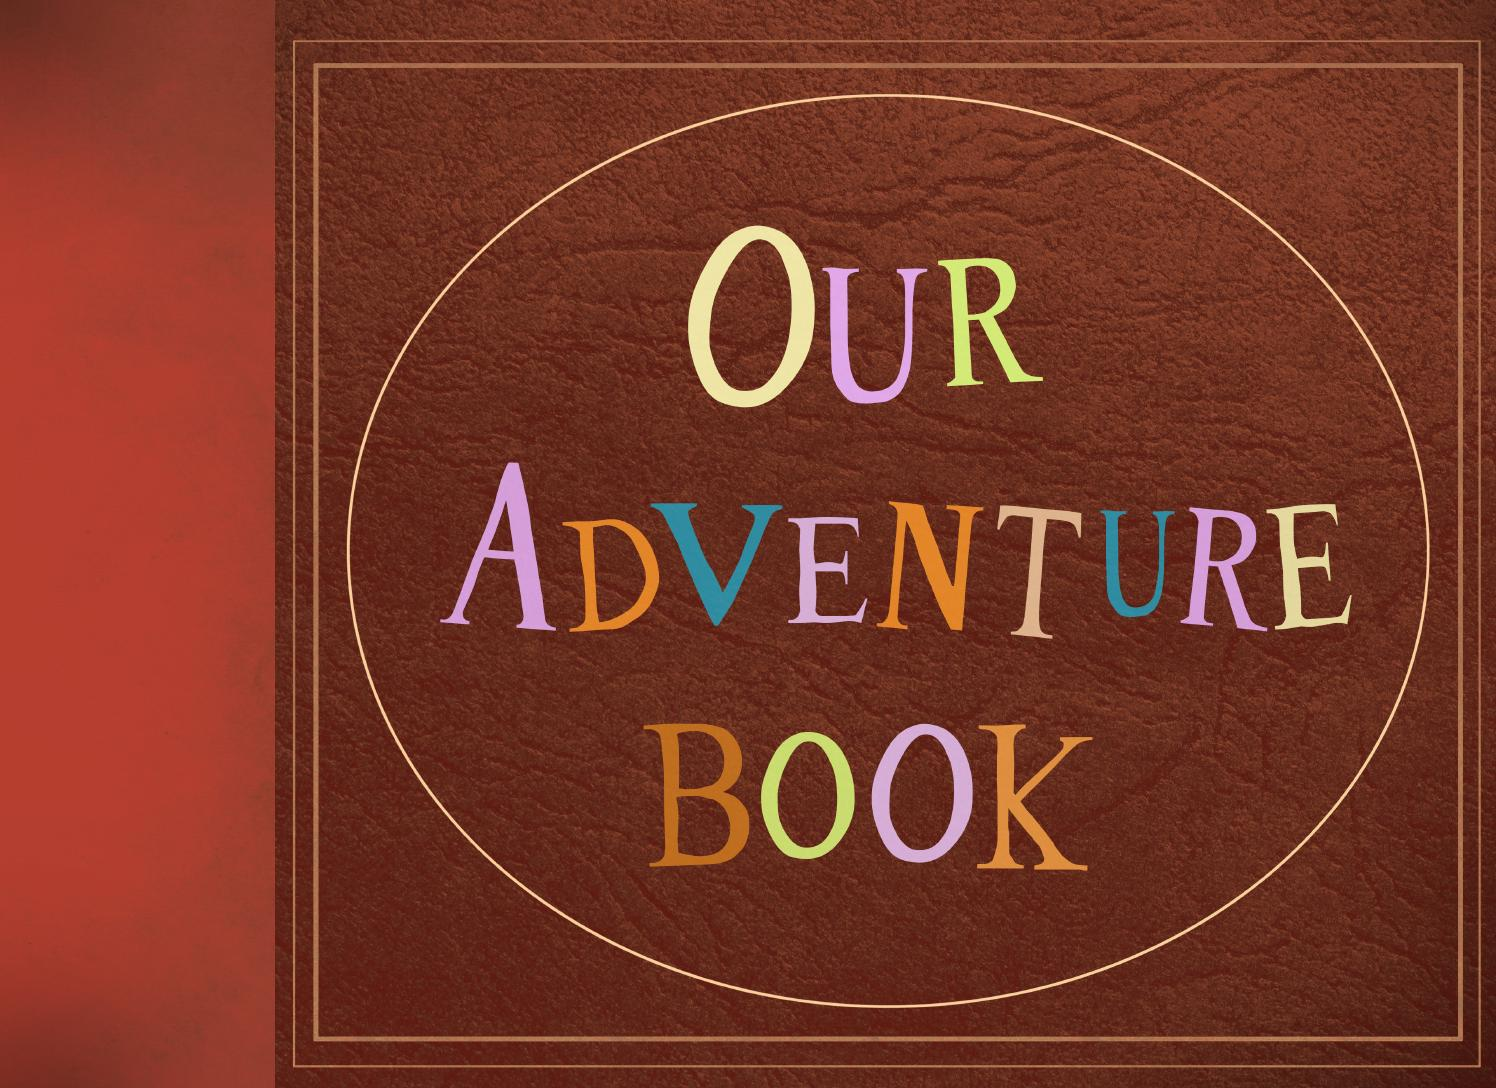 My Adventure Book Printable Cover ~ Our adventure book